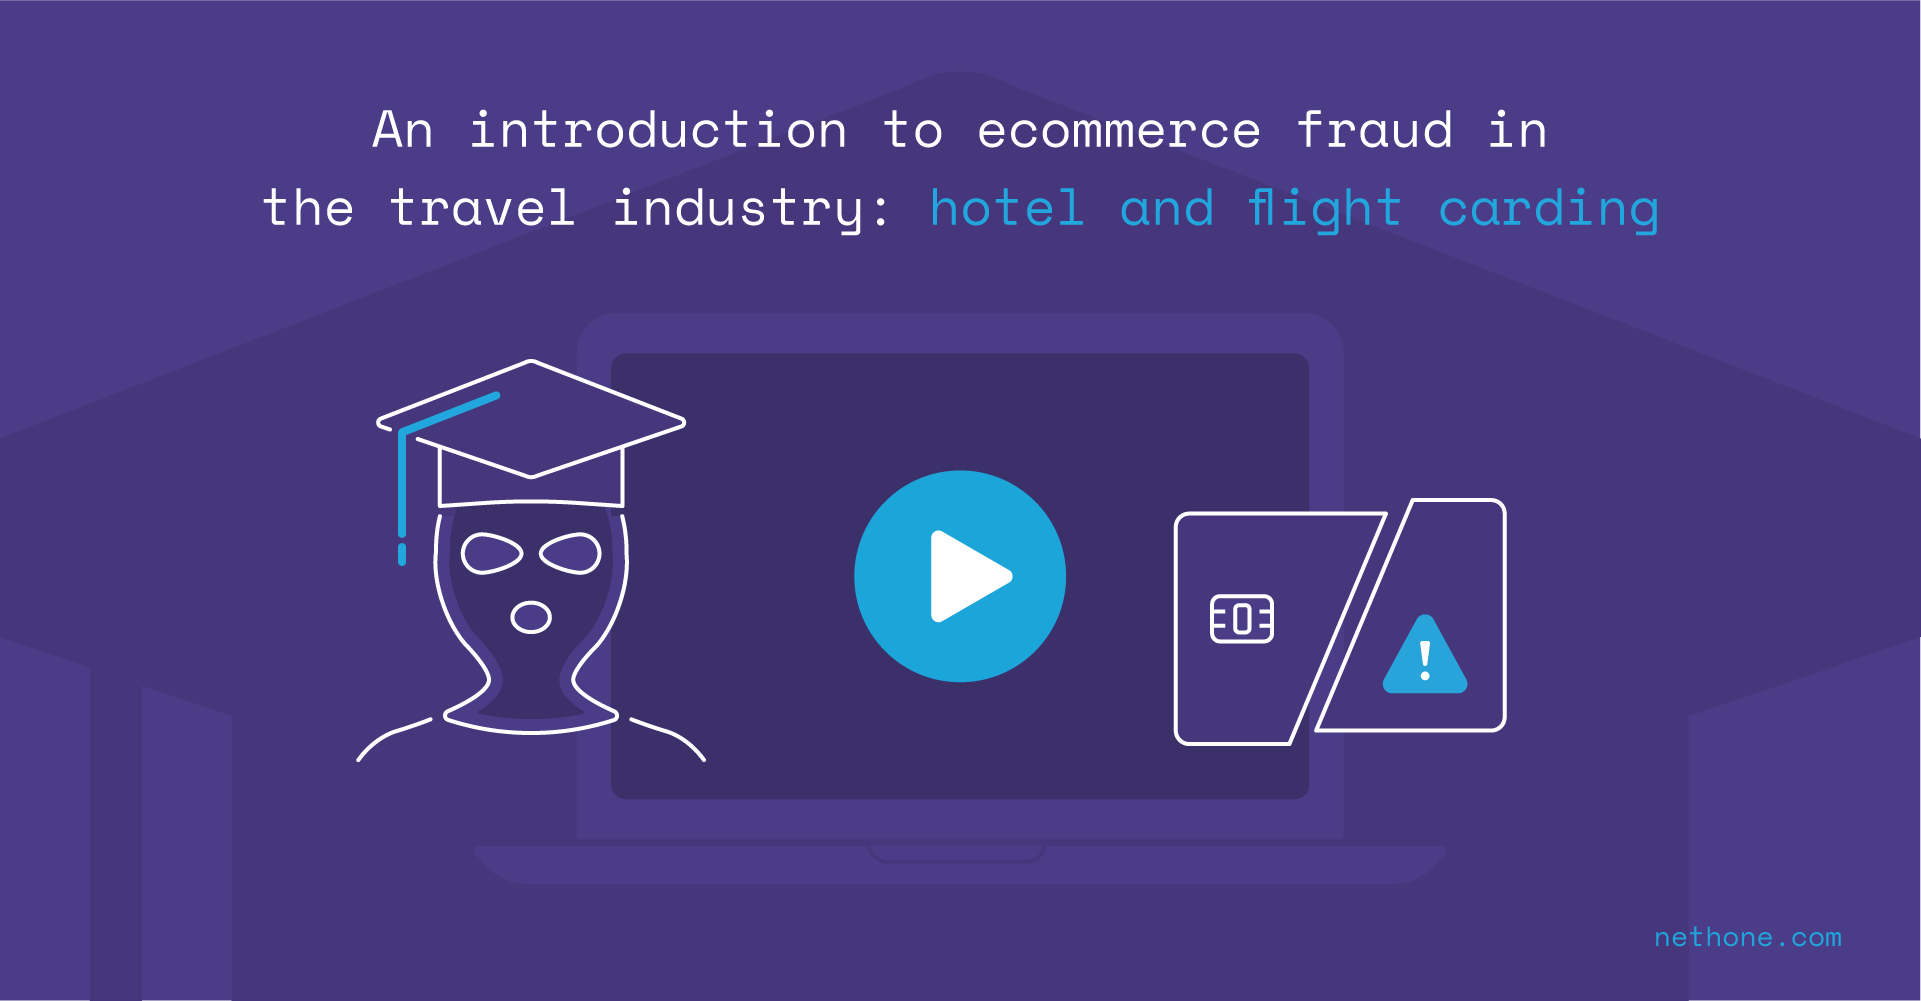 an introduction to ecommerce fraud in the travel industry hotel carding flight carding